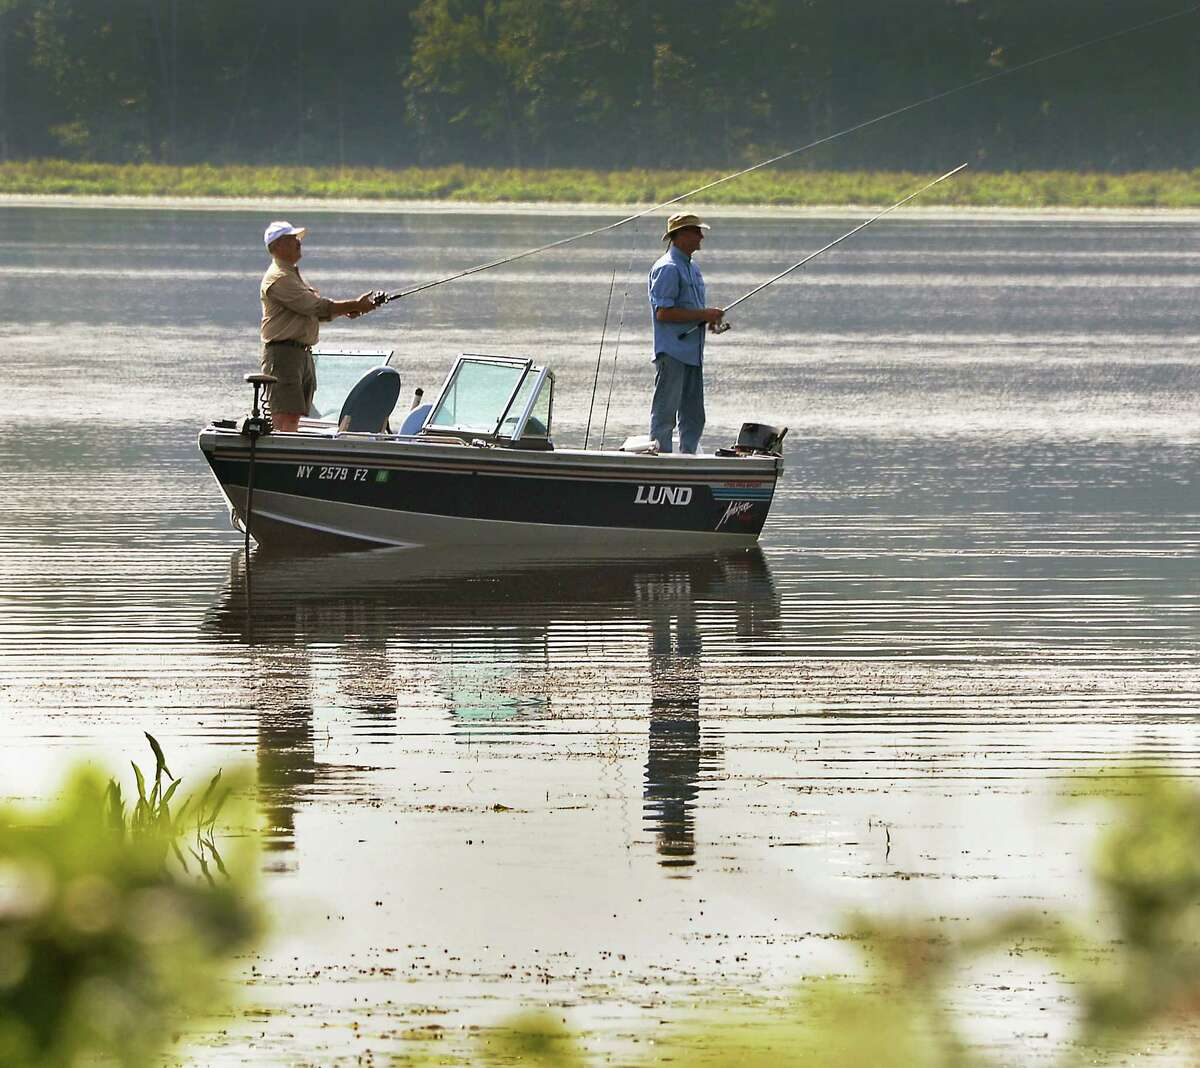 In the mood to grab your fishing rod and tackle box? Click through the slideshow for tips on where to fish (and for what) in the Capital Region.